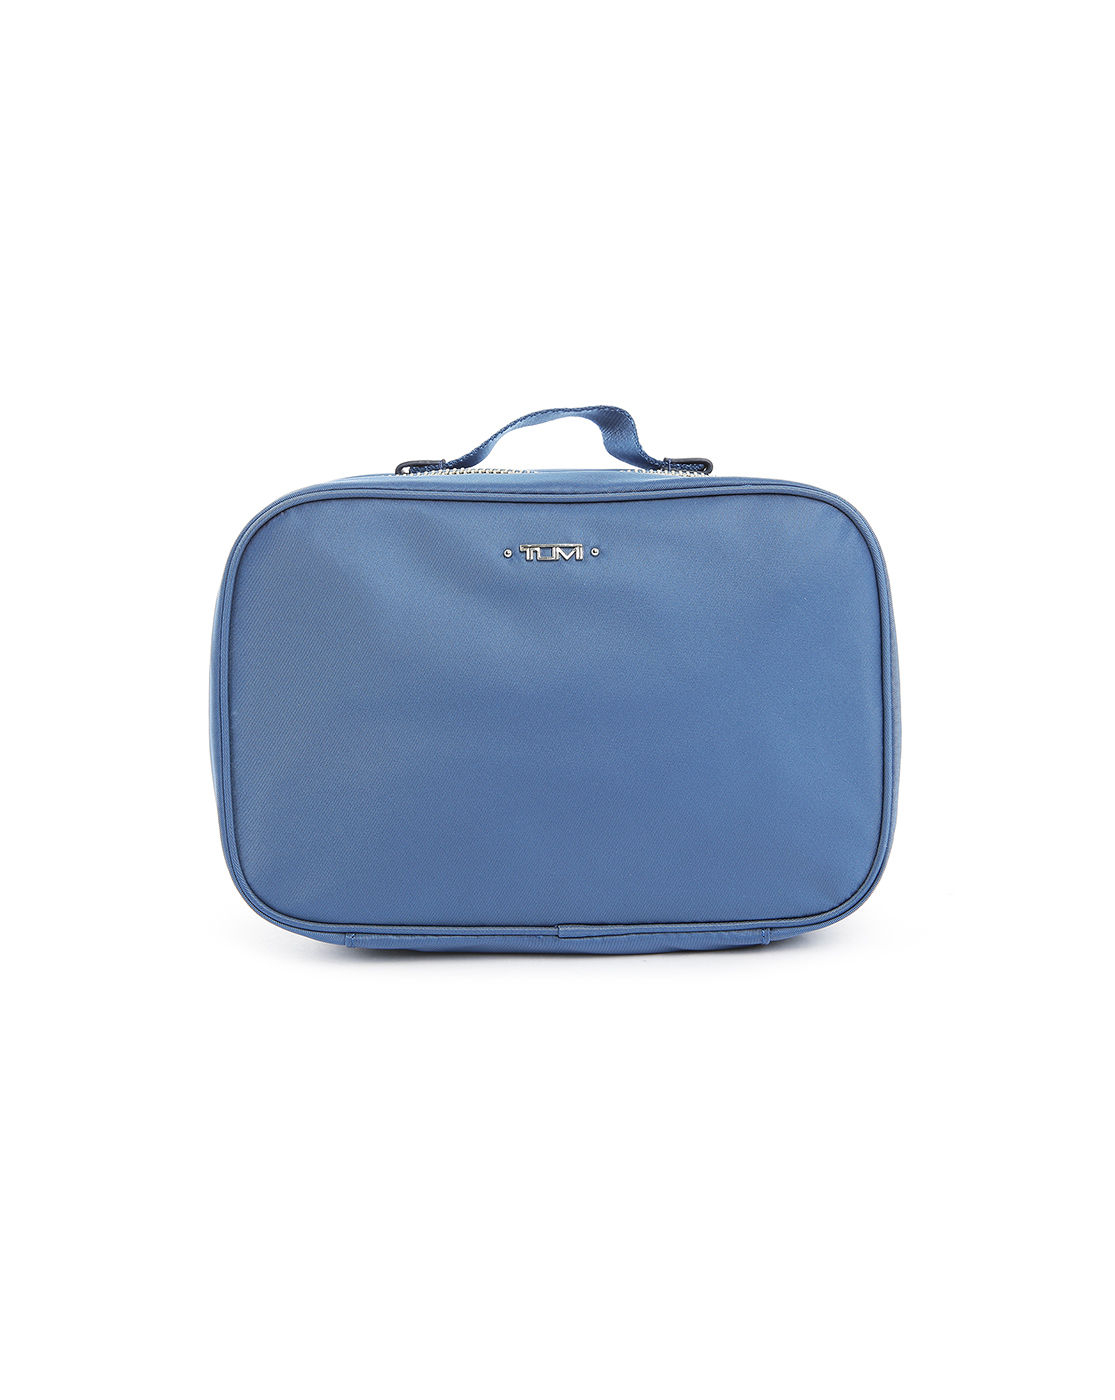 Tumi Blue Laval Toiletry Medium Wash Bag in Blue for Men